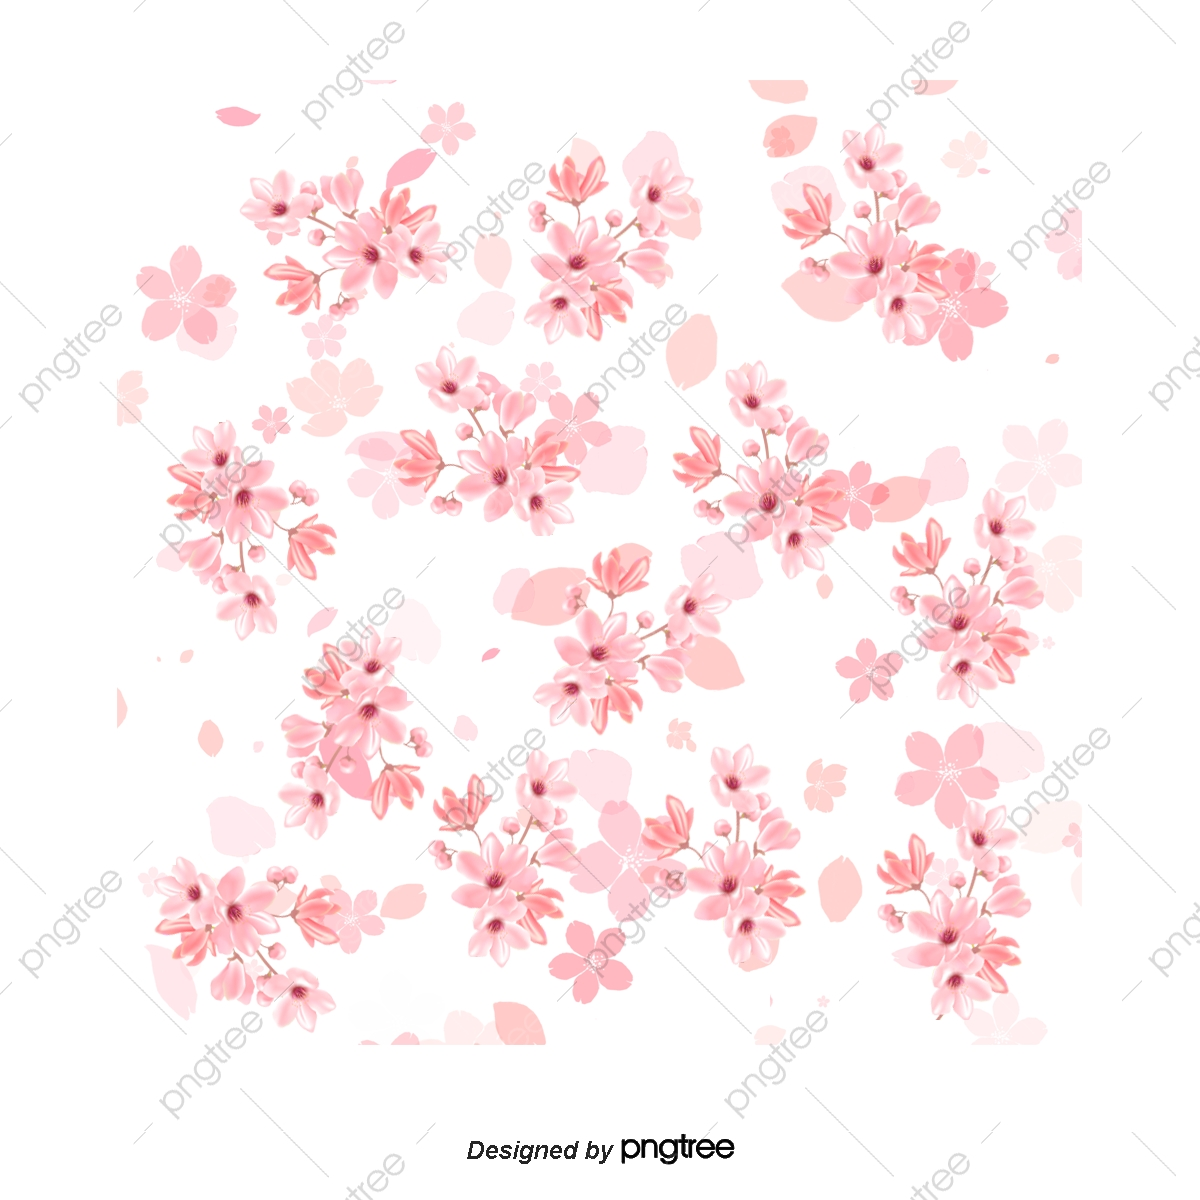 flower background png vector psd and clipart with transparent background for free download pngtree https pngtree com freepng vector flowers background 1245905 html